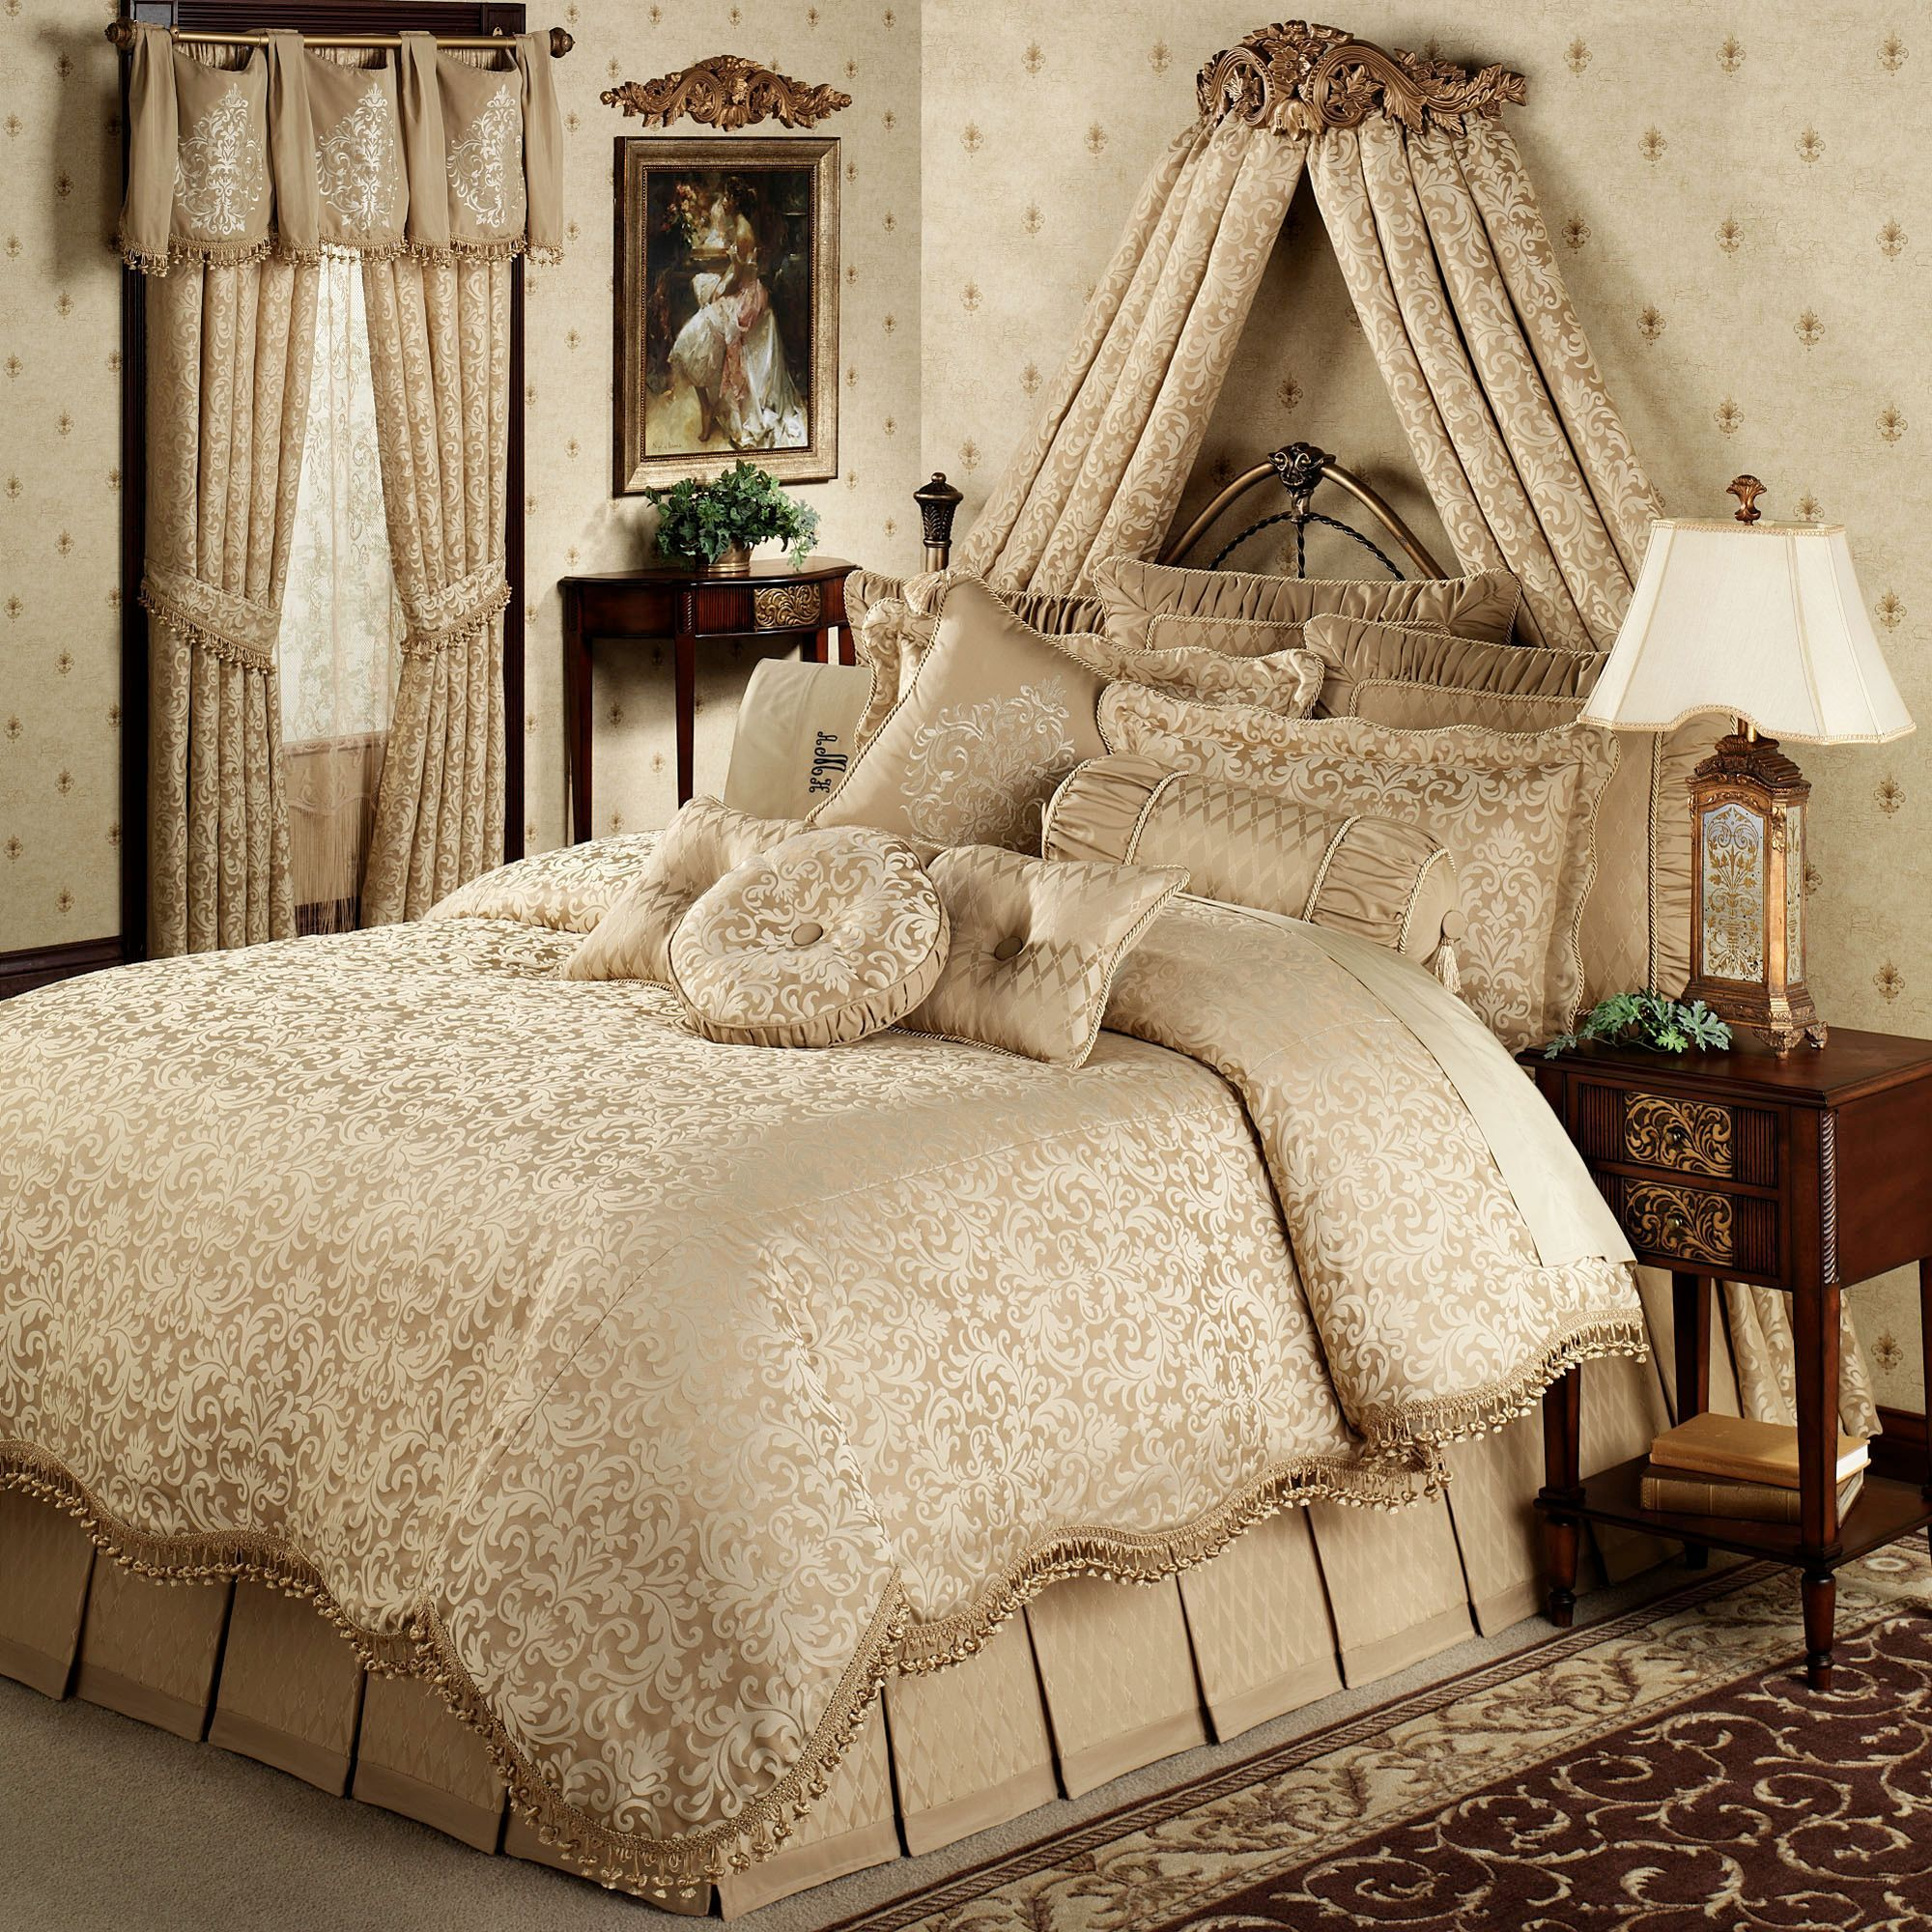 Contemporary luxury bedding - Newcastle Damask Comforter Bedding